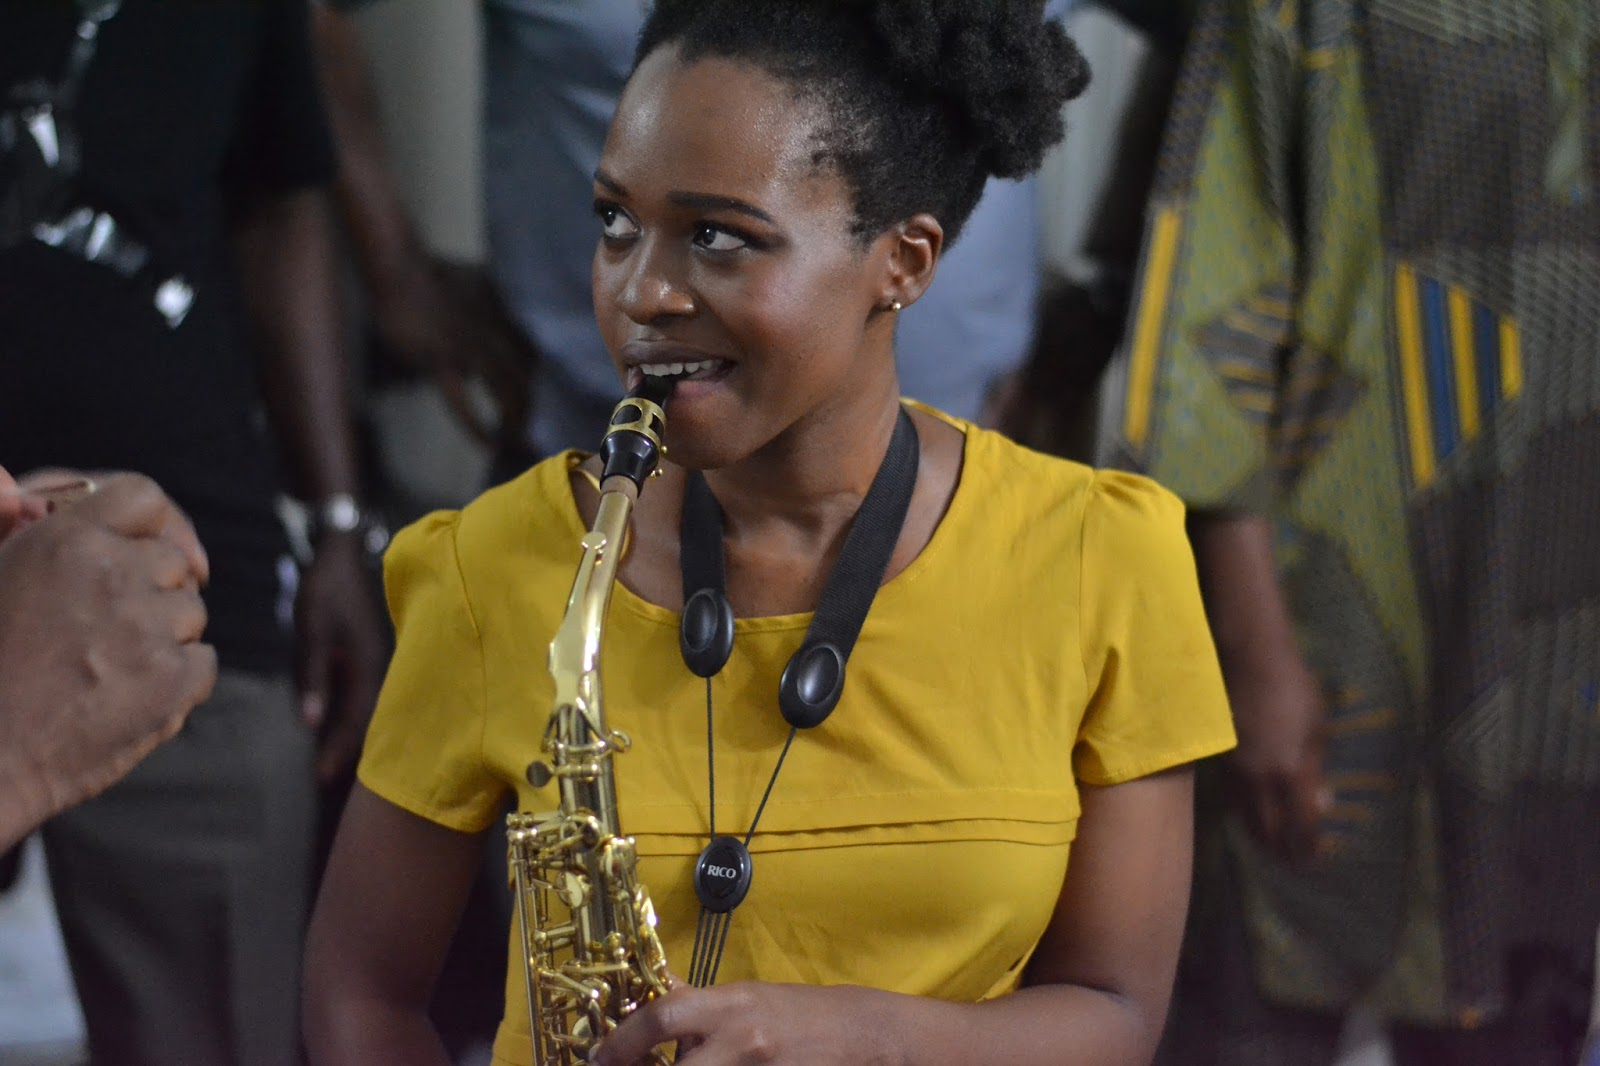 igbobi college school song on the sax